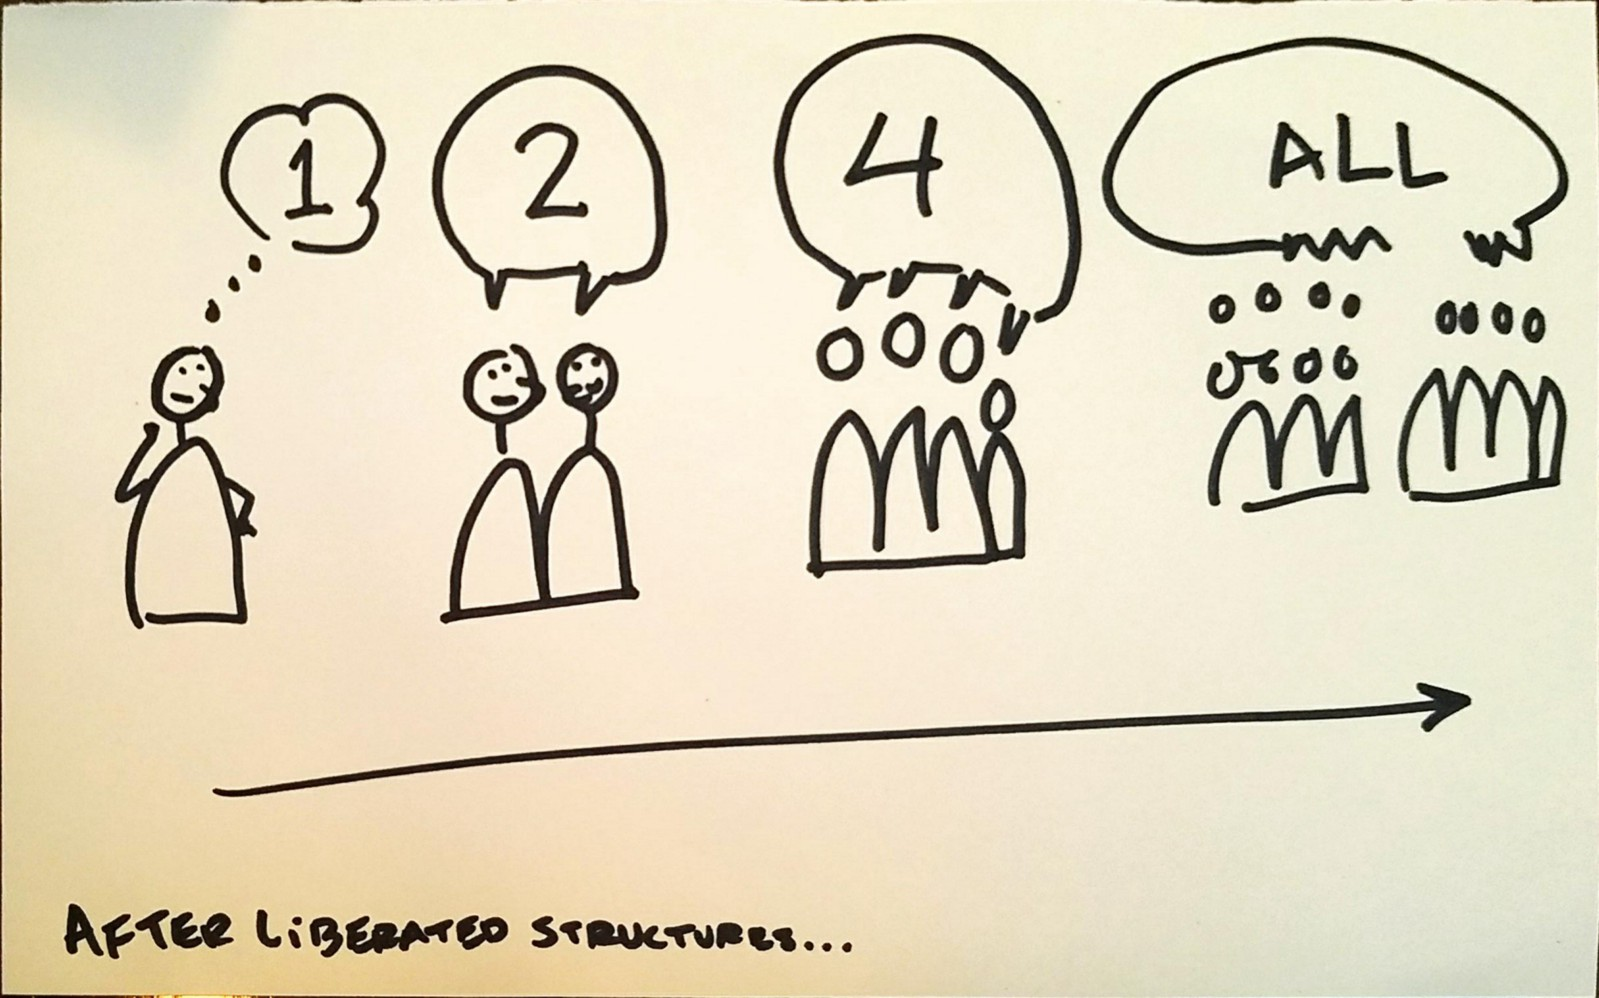 Two Better Ways To Have Group Conversations The Conversation